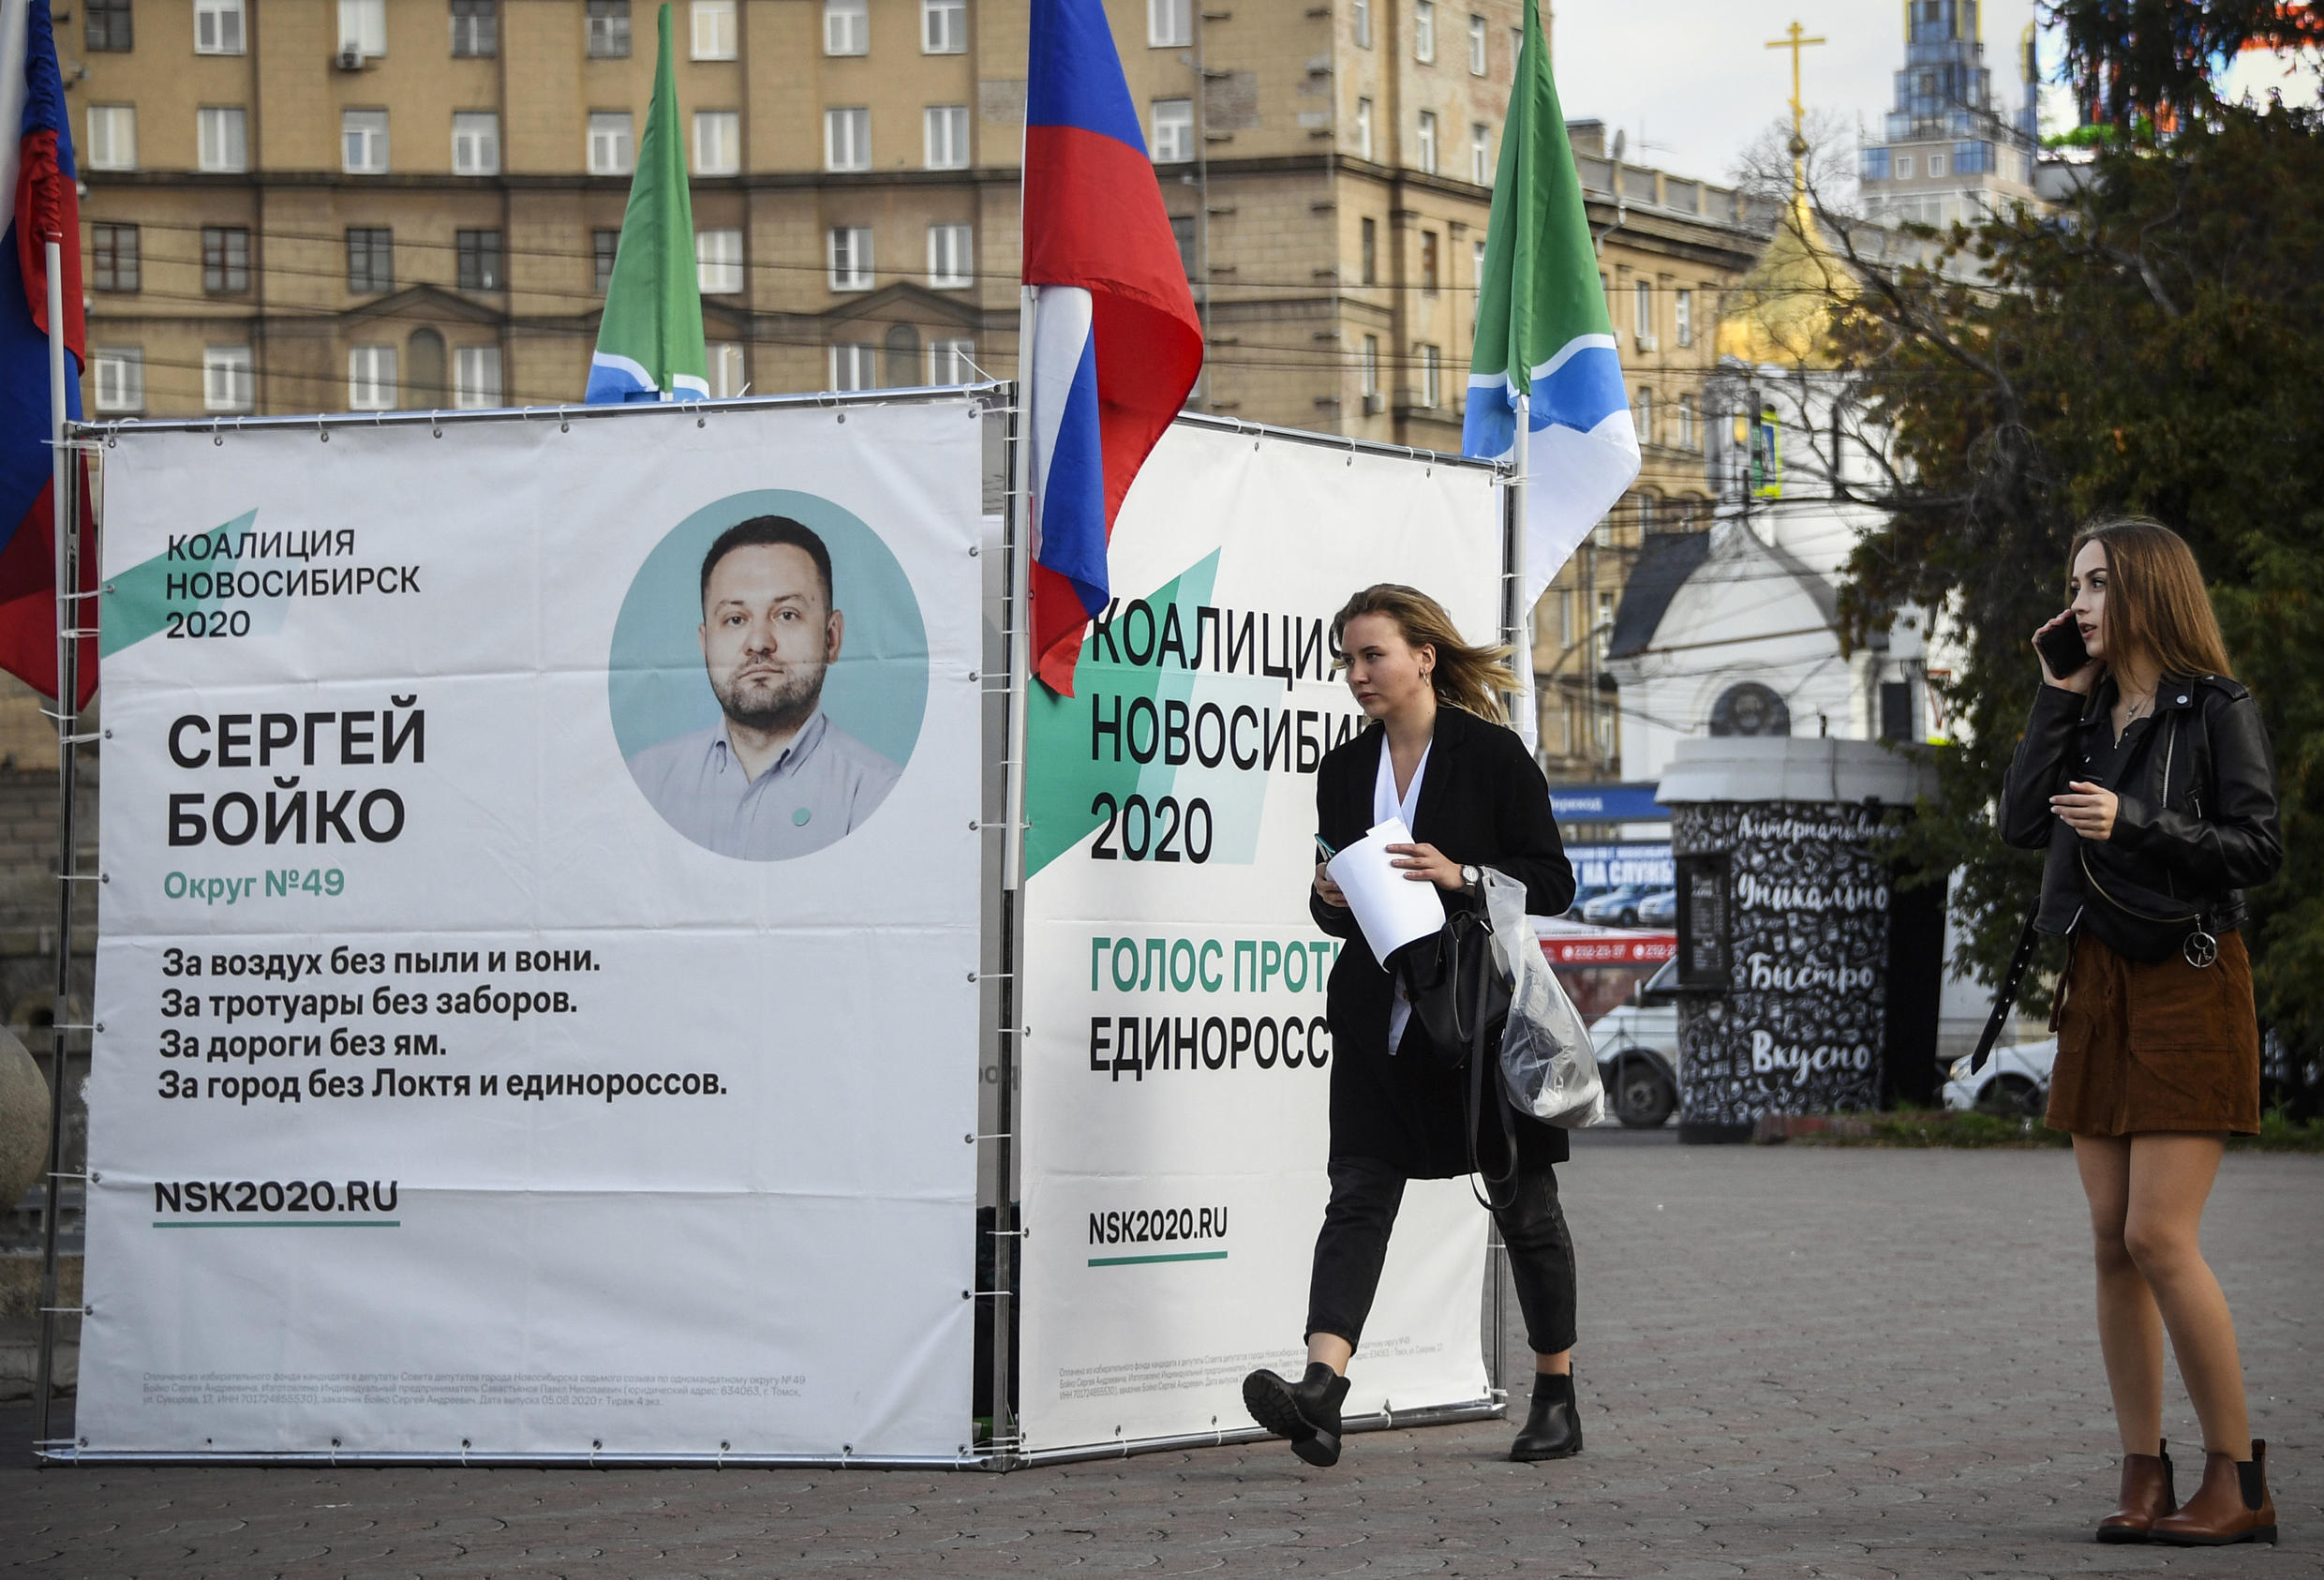 People walk past a campaign tent of Sergei Boiko, the head of Alexei Navalny's Novosibirsk headquarters and the city council candidate in September 13 regional elections, in Novosibirsk on September 9, 2020.